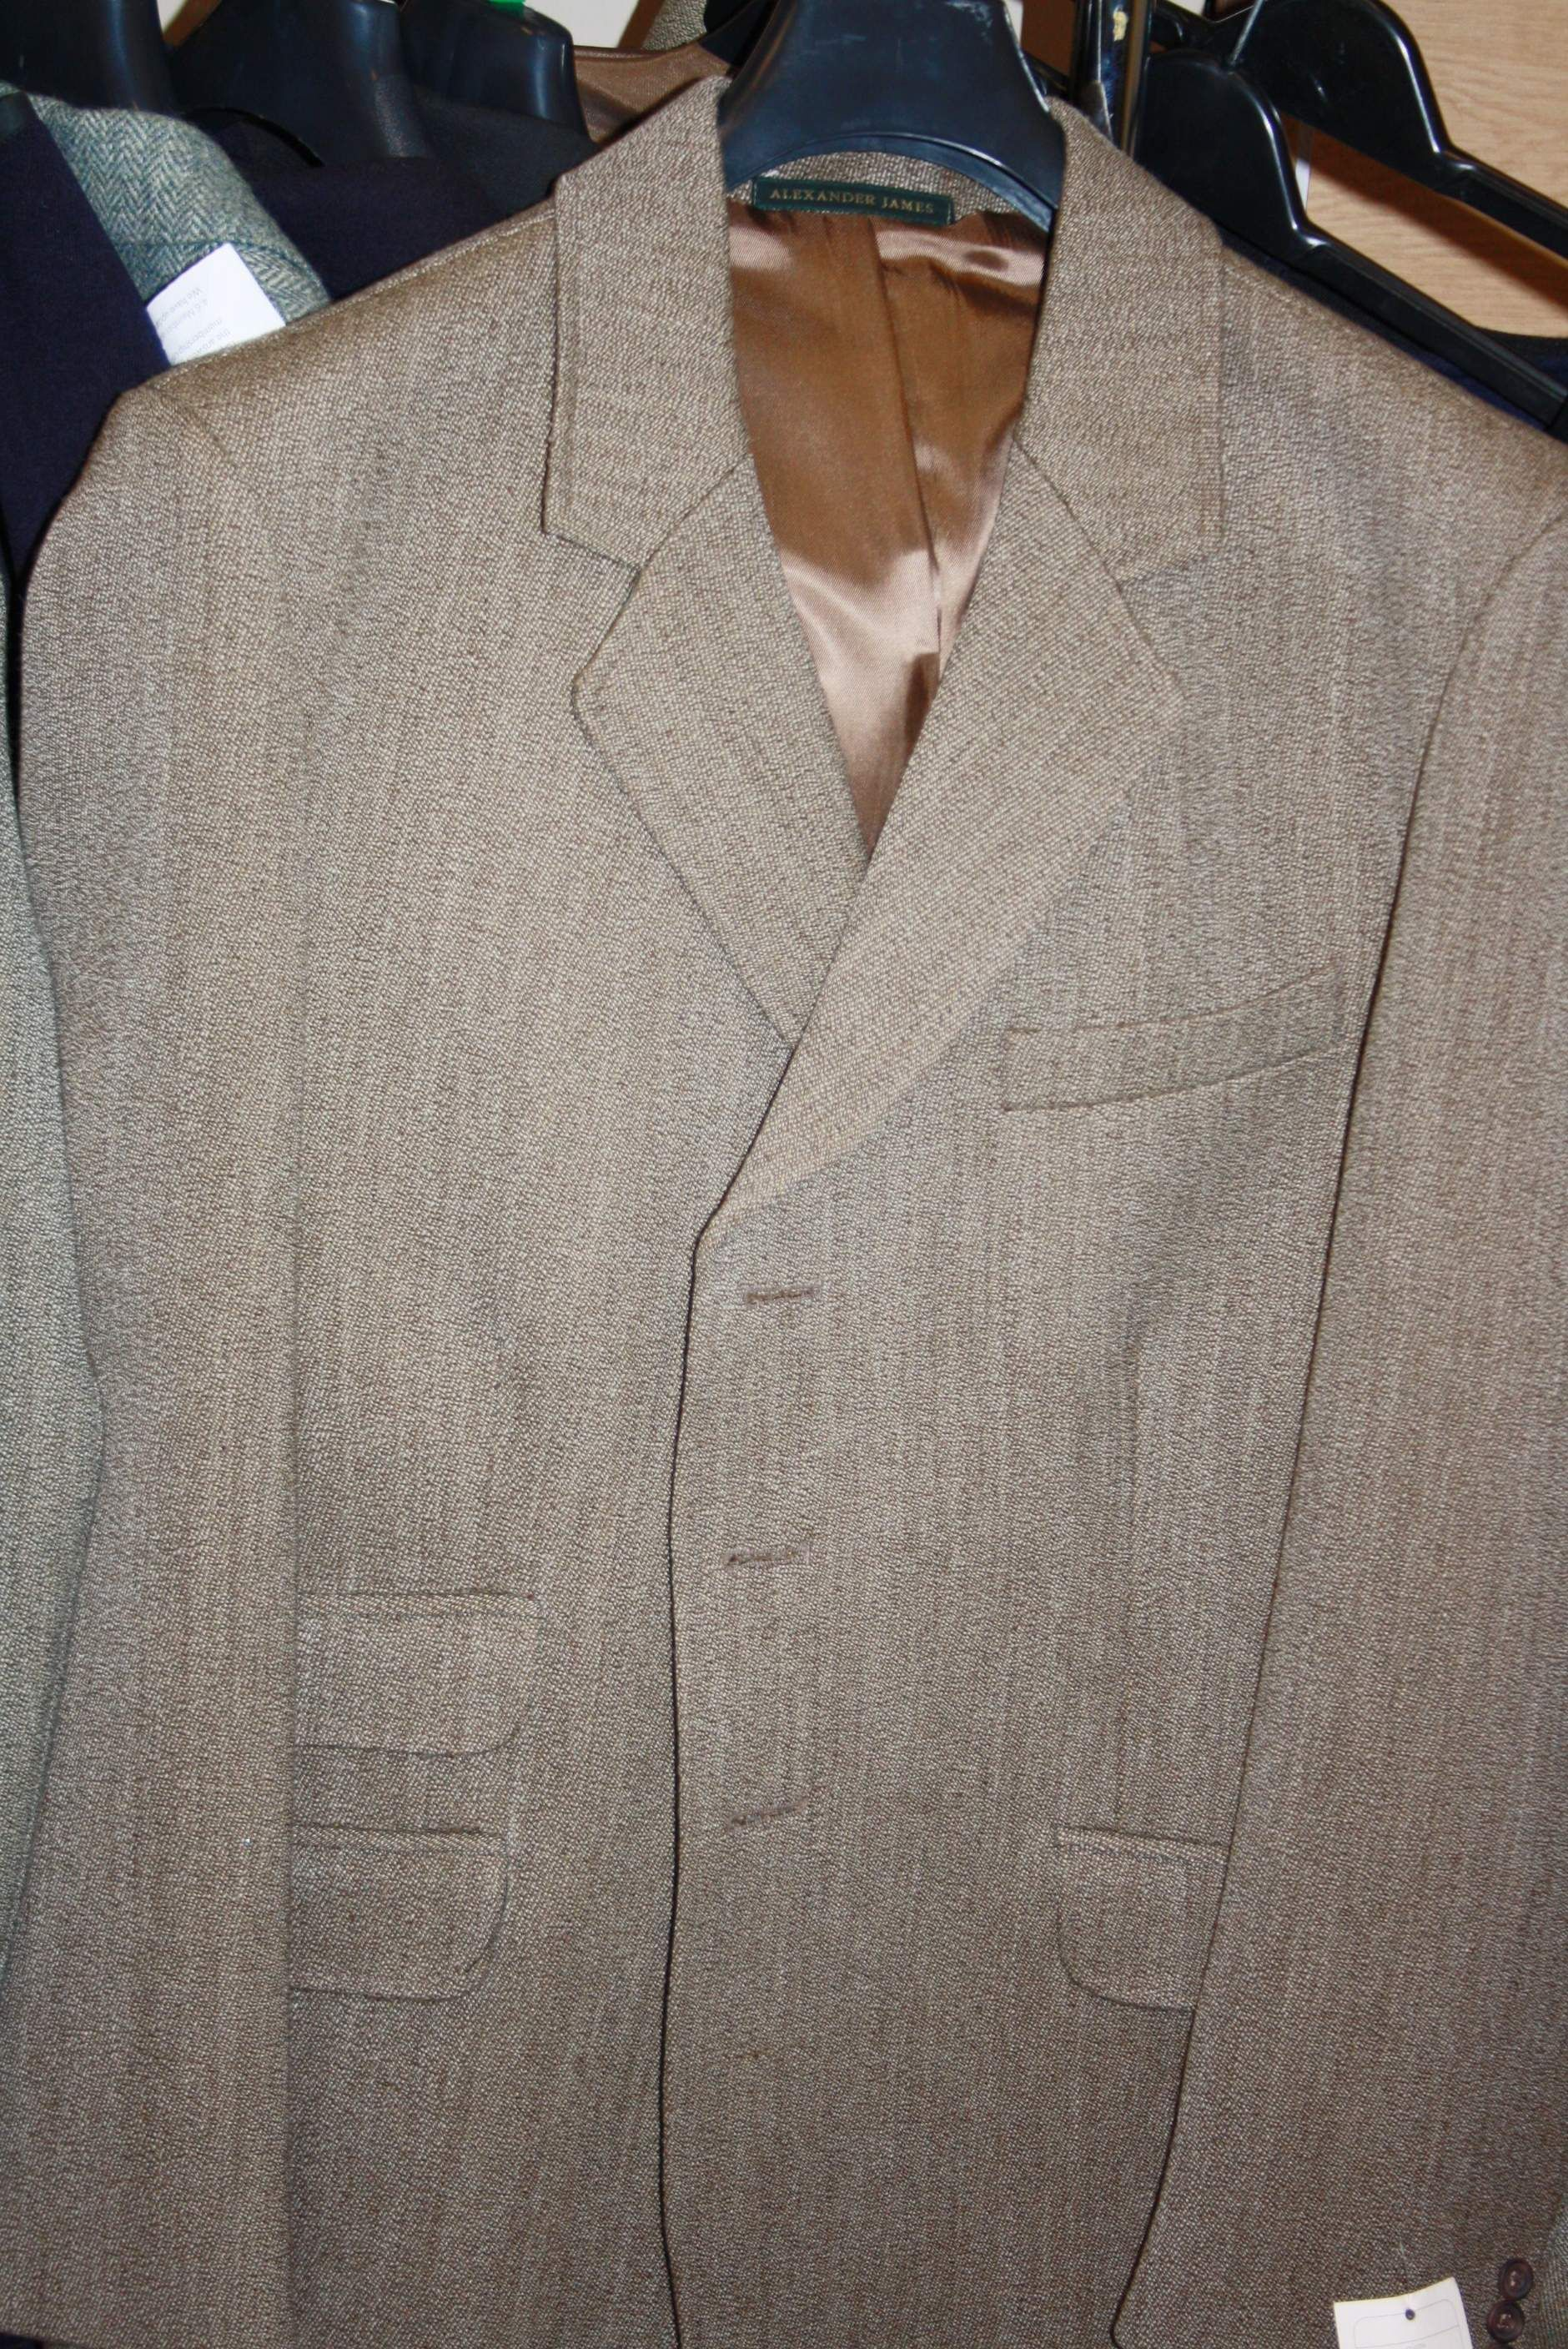 Mens Keeper Tweed Hacking Jacket - Fawn